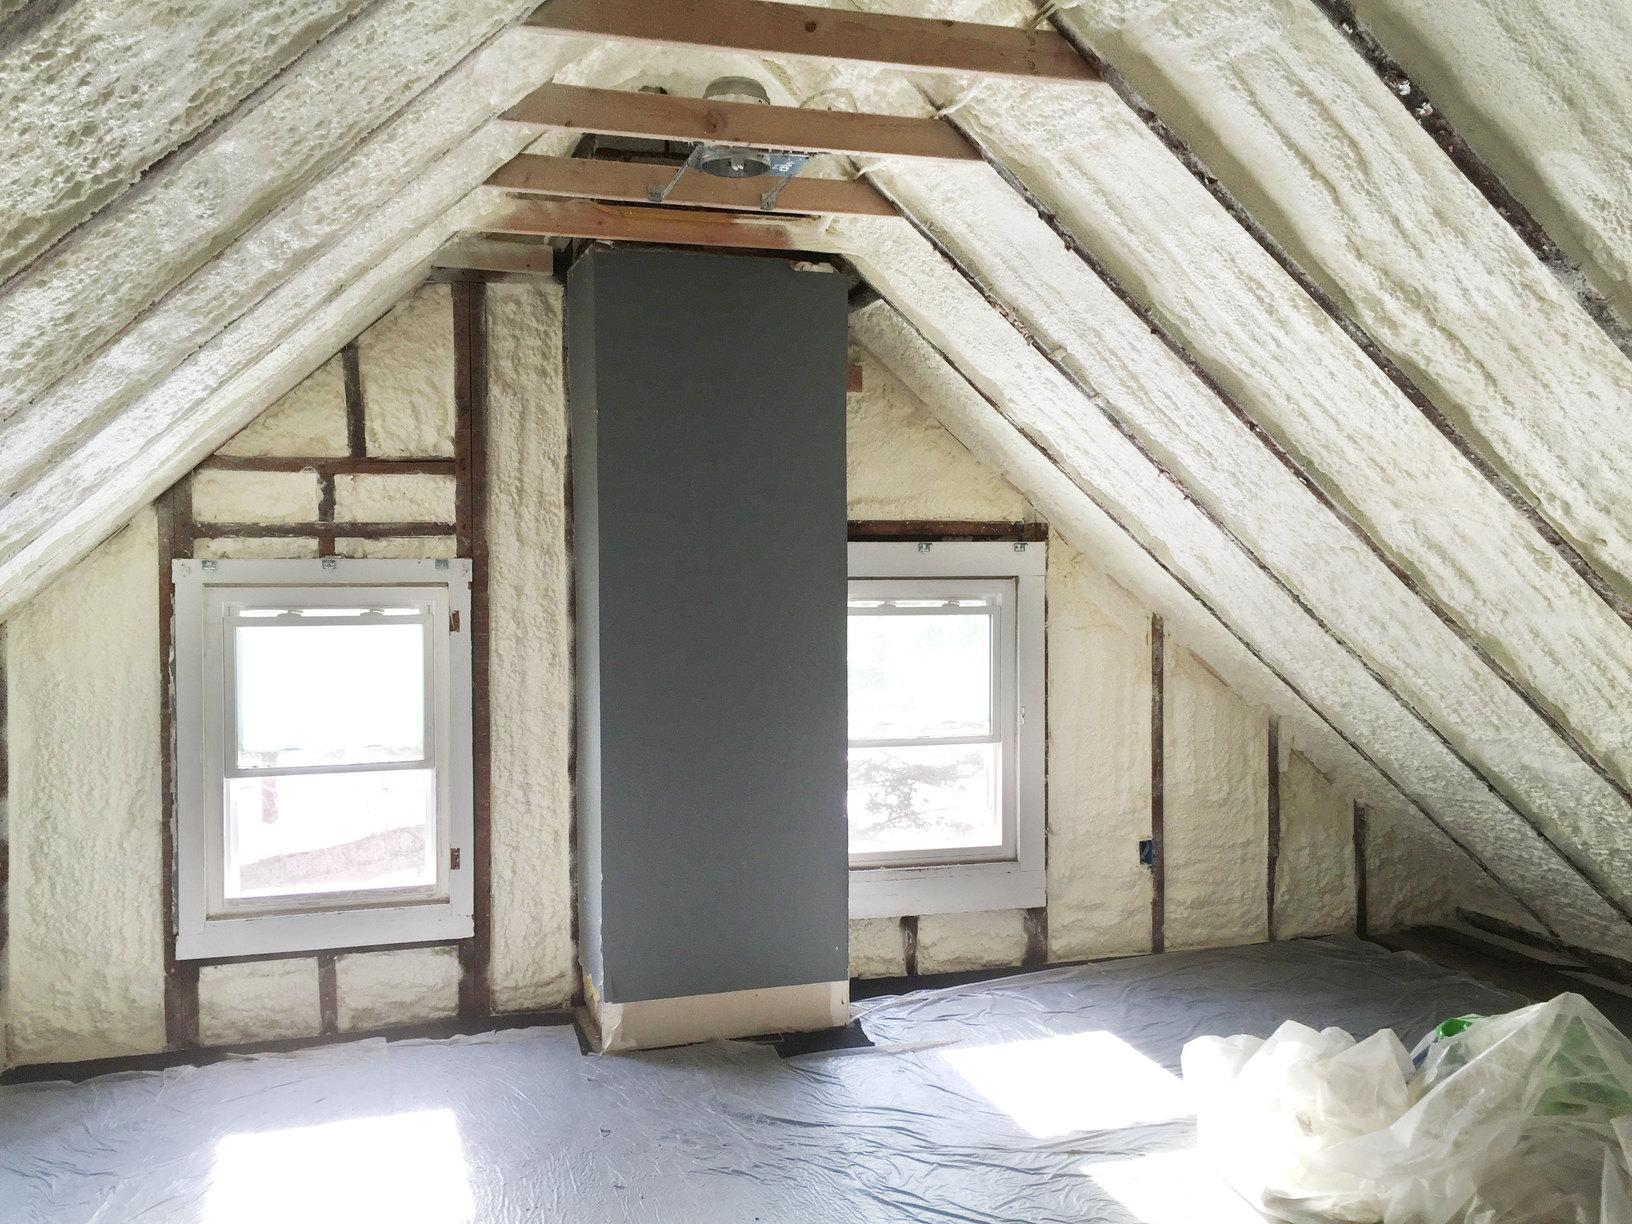 Third Story Attic Renovation - Open Cell Spray Foam - After Photo